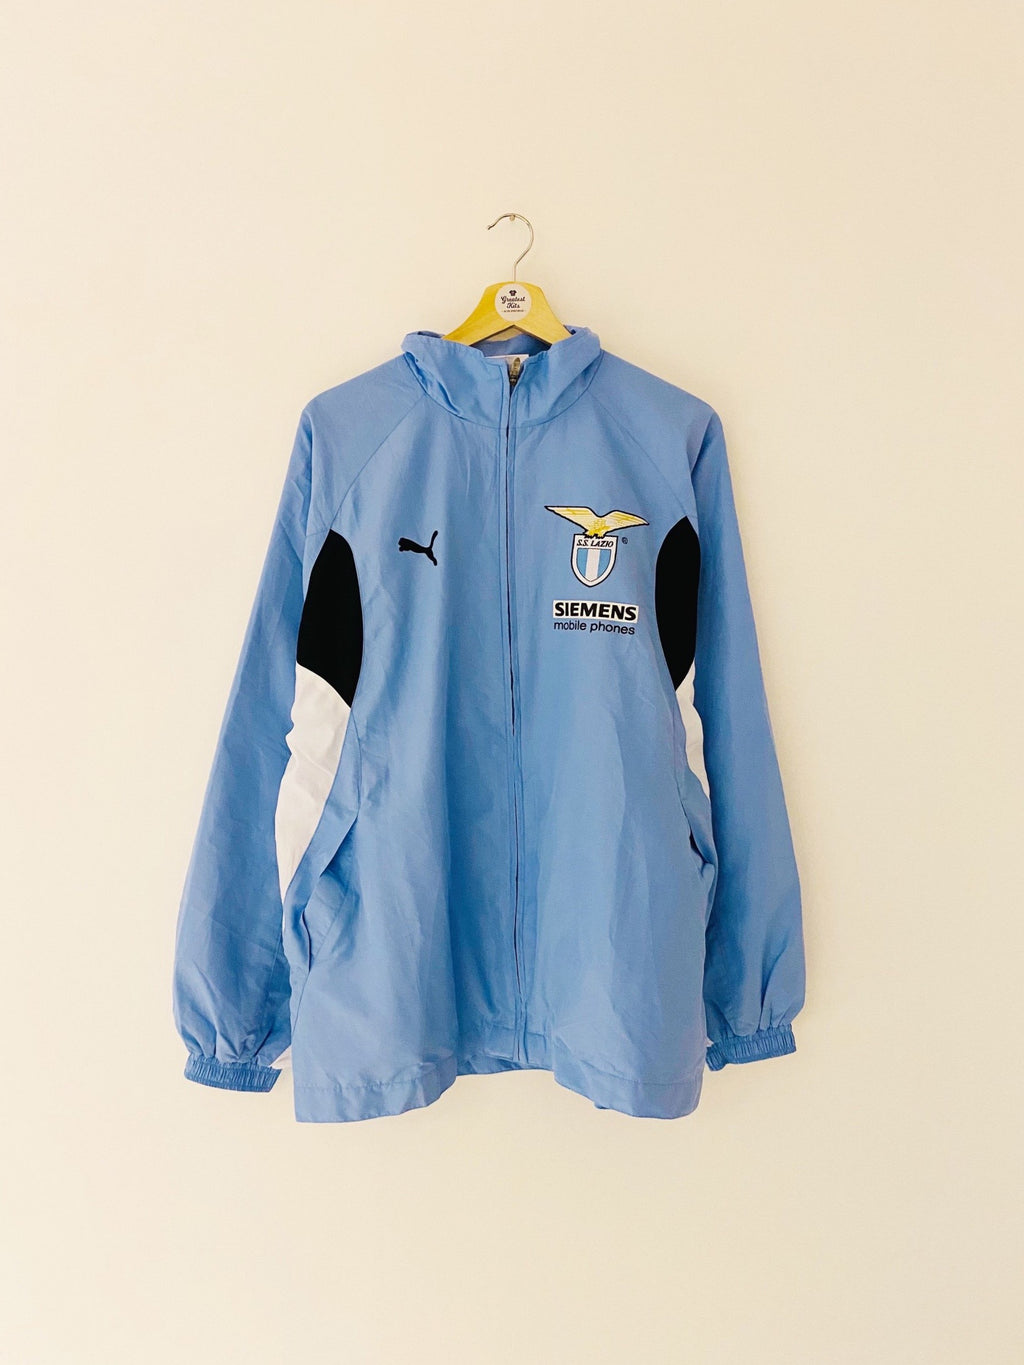 2001/02 Lazio Training Jacket (M) 9/10